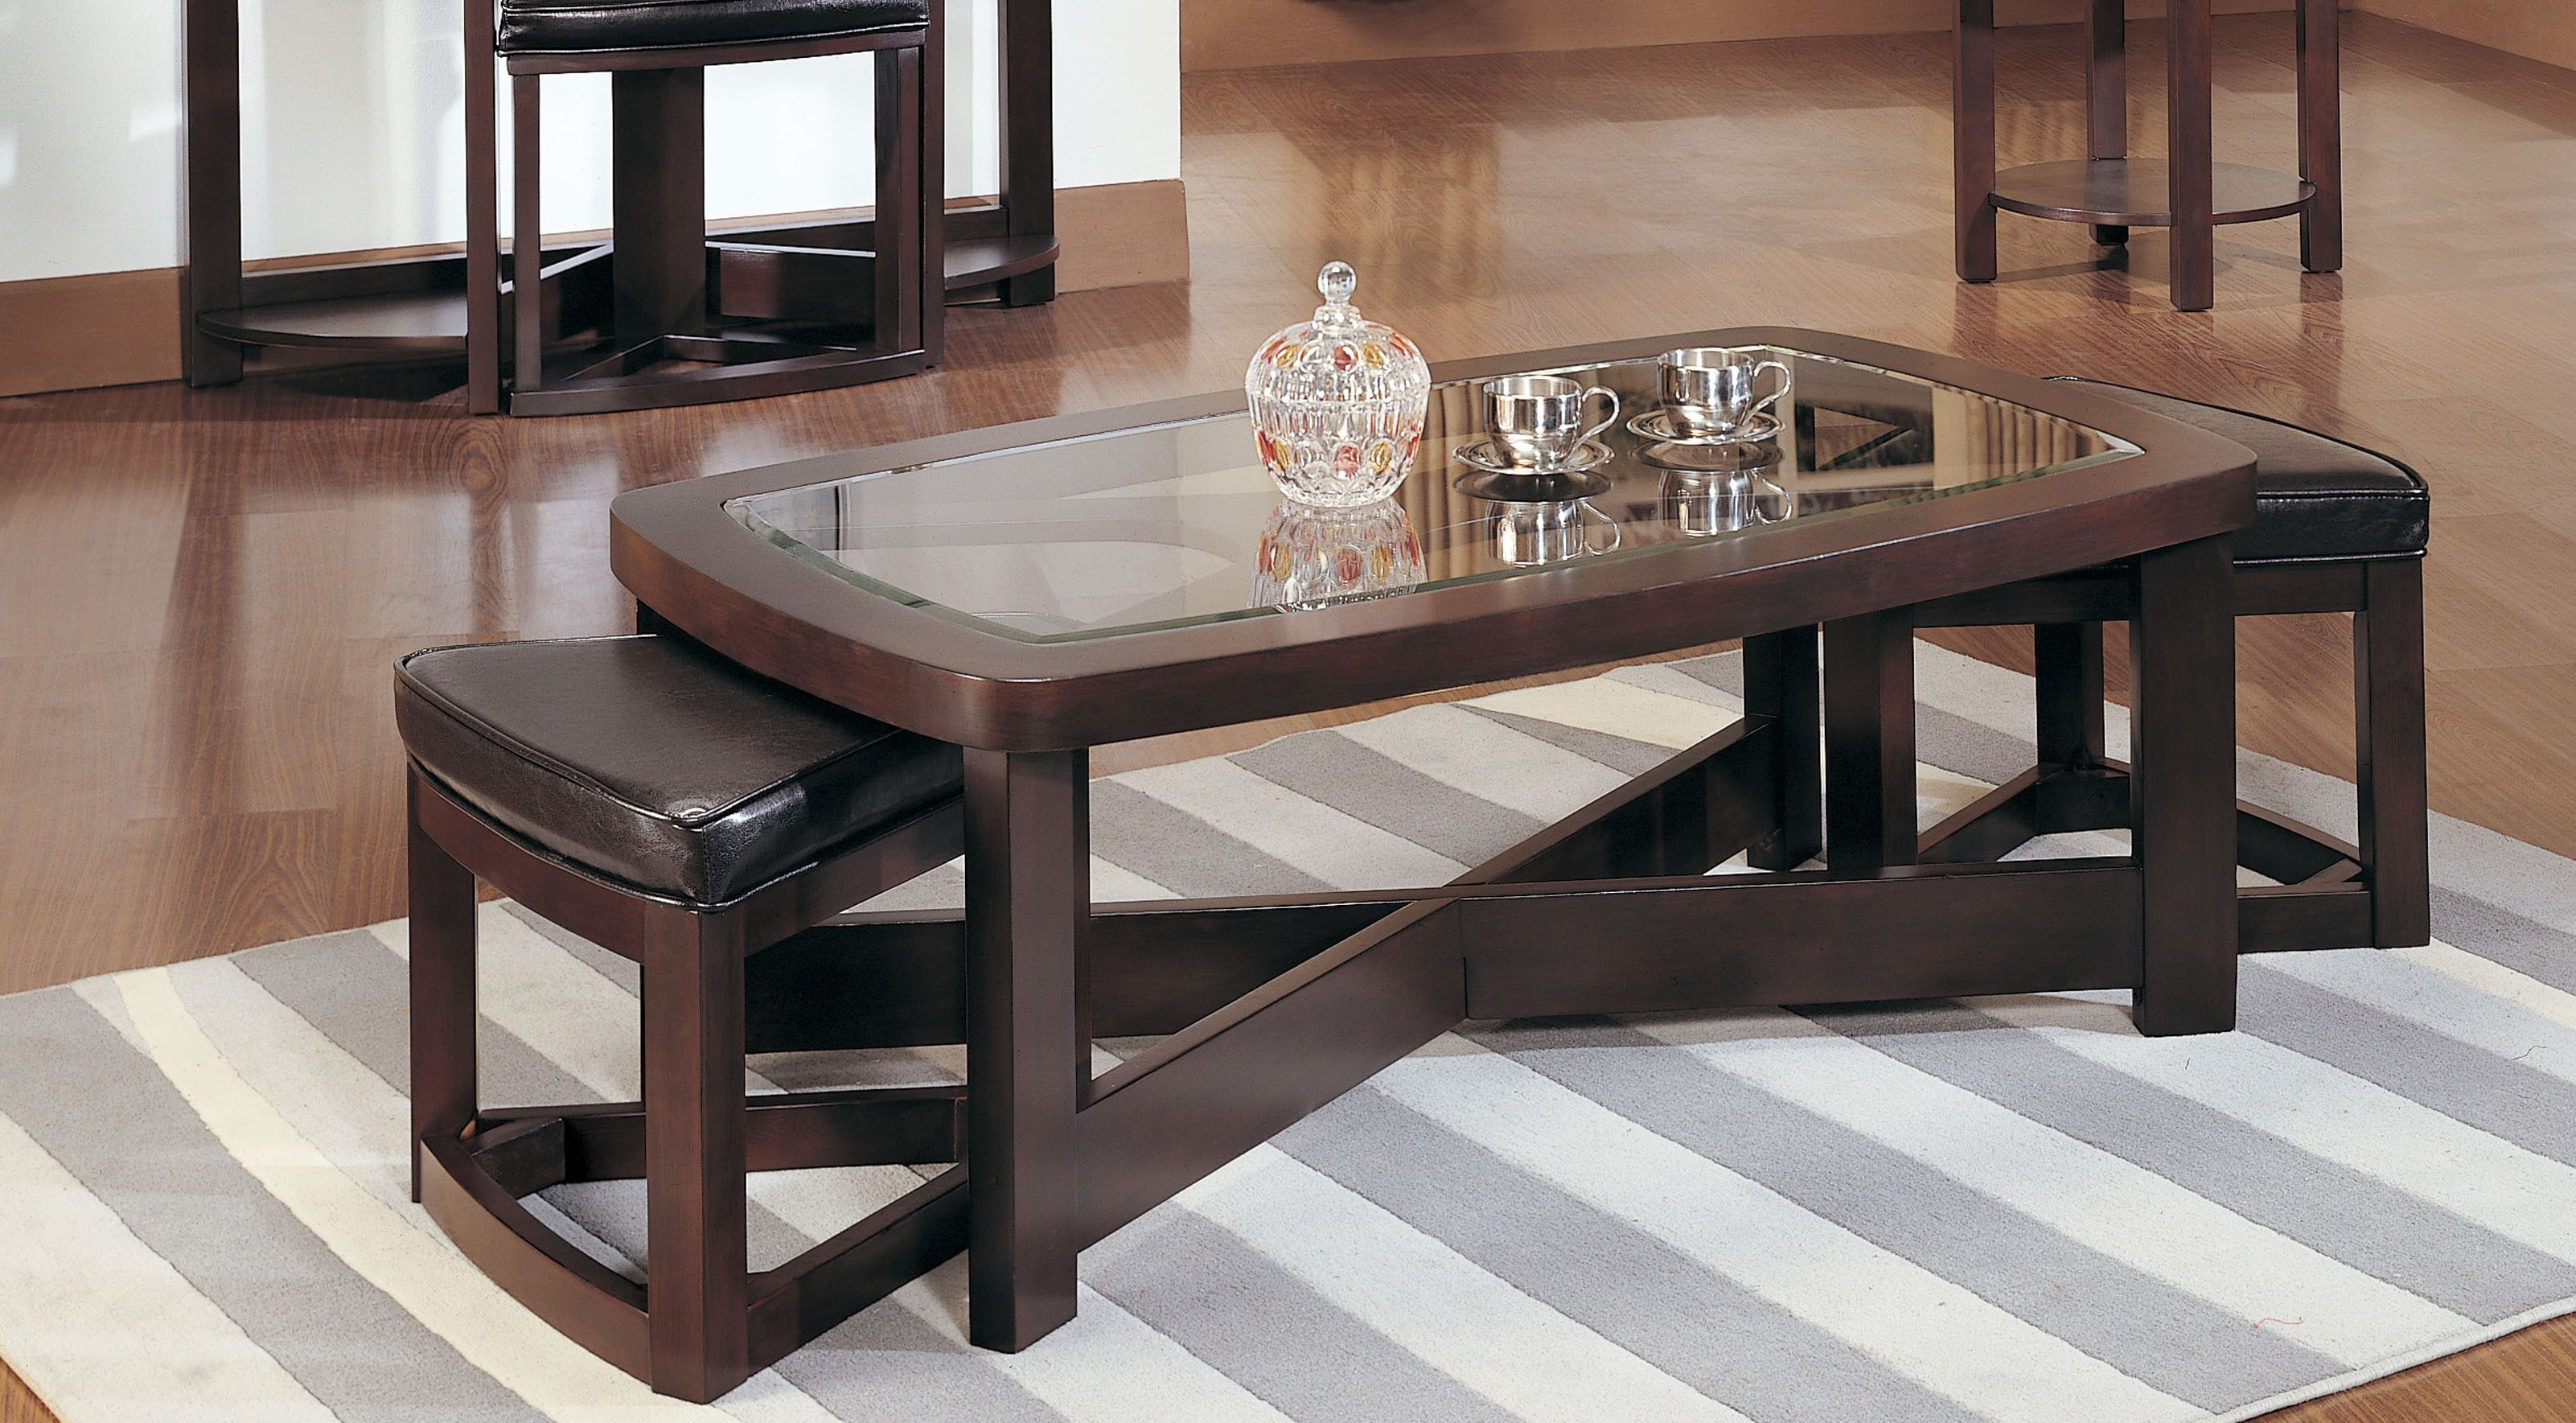 Breathtaking Coffee Table With Stools Underneath And White Gray